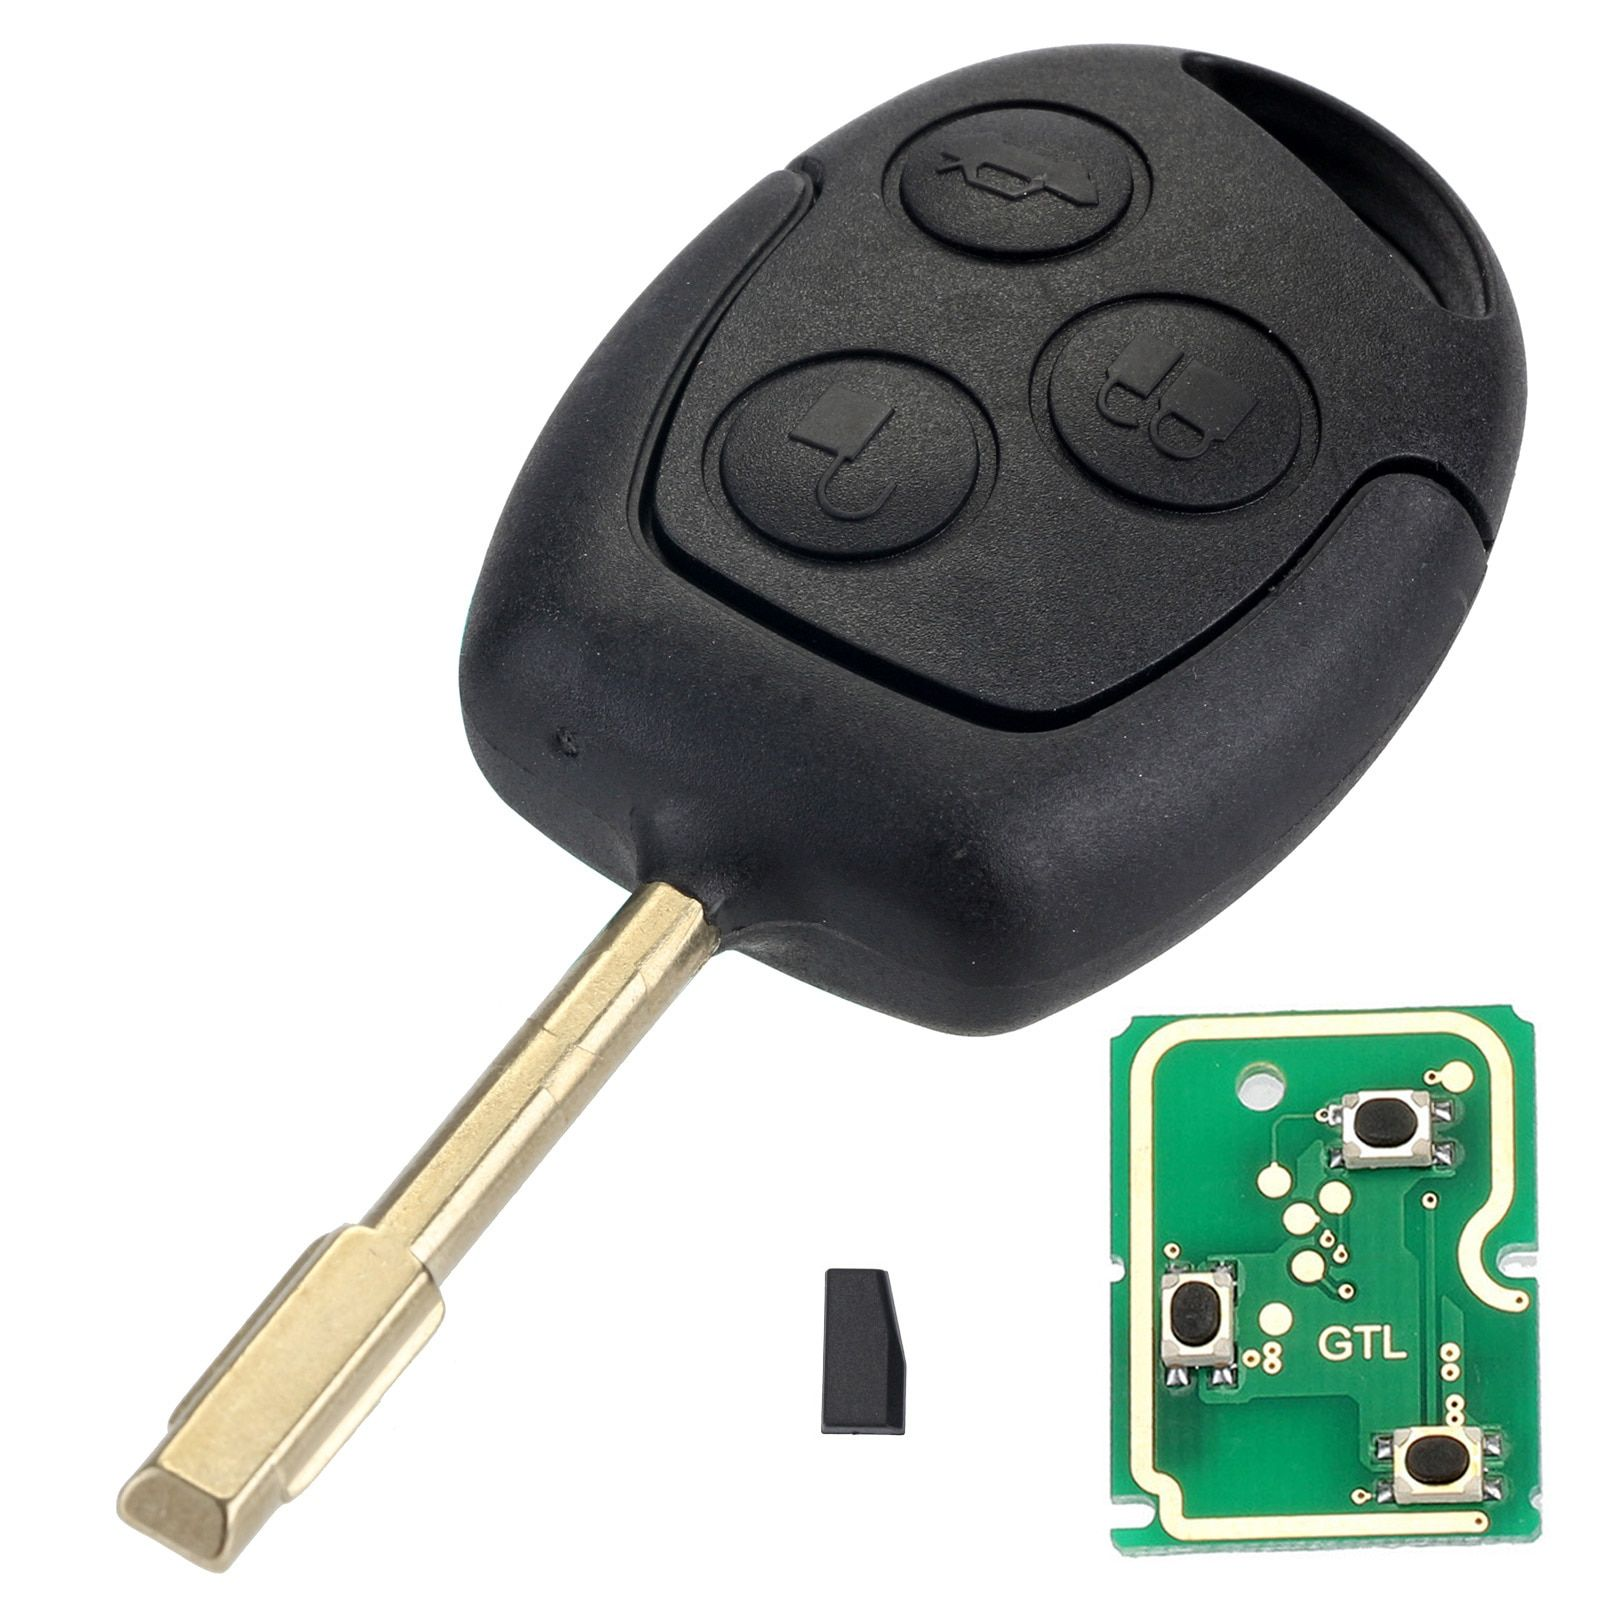 4D60 Remote Car Key Shell Case 433MHz Chip Car Key Case Replacement for FORD Focus Fiesta Mondeo C-MAX Fusion Transit KA D25